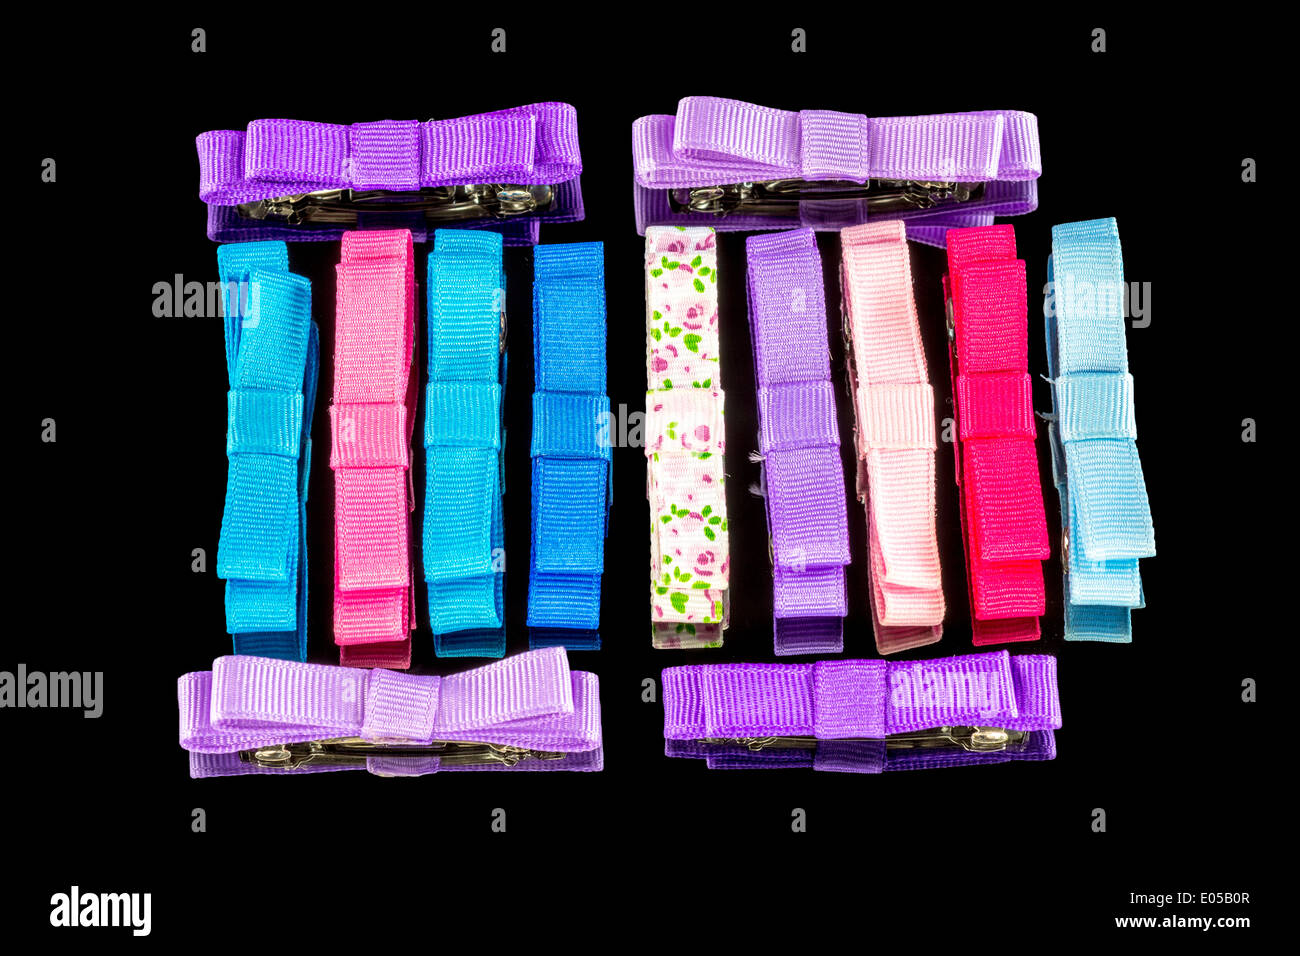 Collection of different colored hair bows - Stock Image